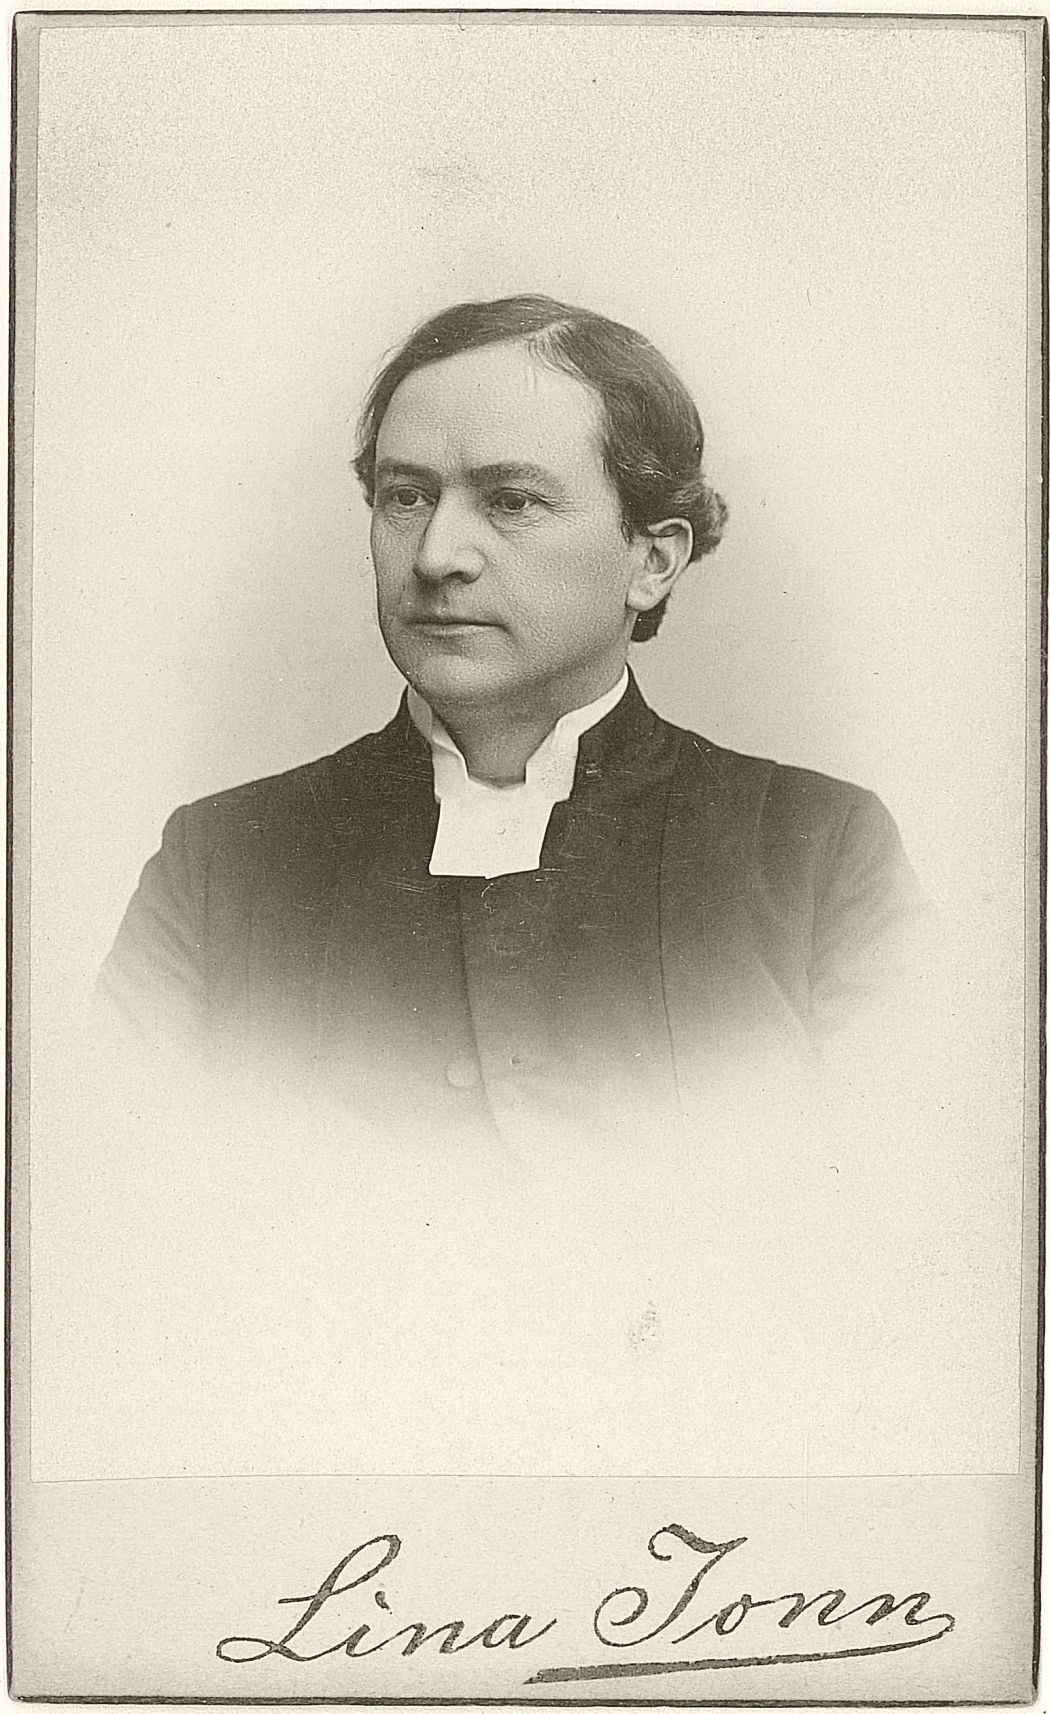 Magnus Pfannenstill (1858-1940), Swedish theologian and clergyman, professor at en:Lund University and cathedral dean (domprost) in Lund.